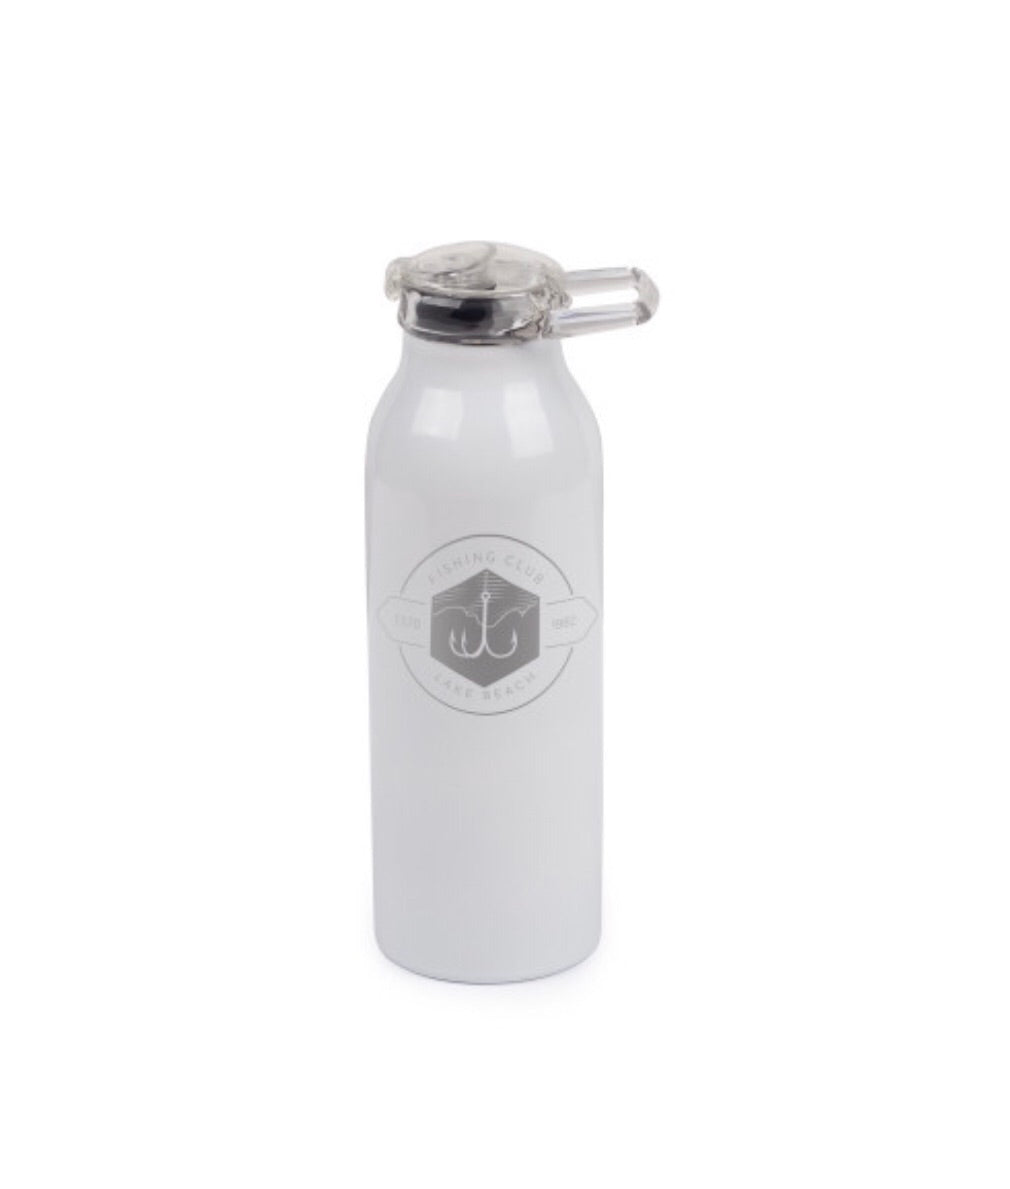 Personalized Premium 20 oz Stainless Steel Drinking Bottle - uncommon-etching